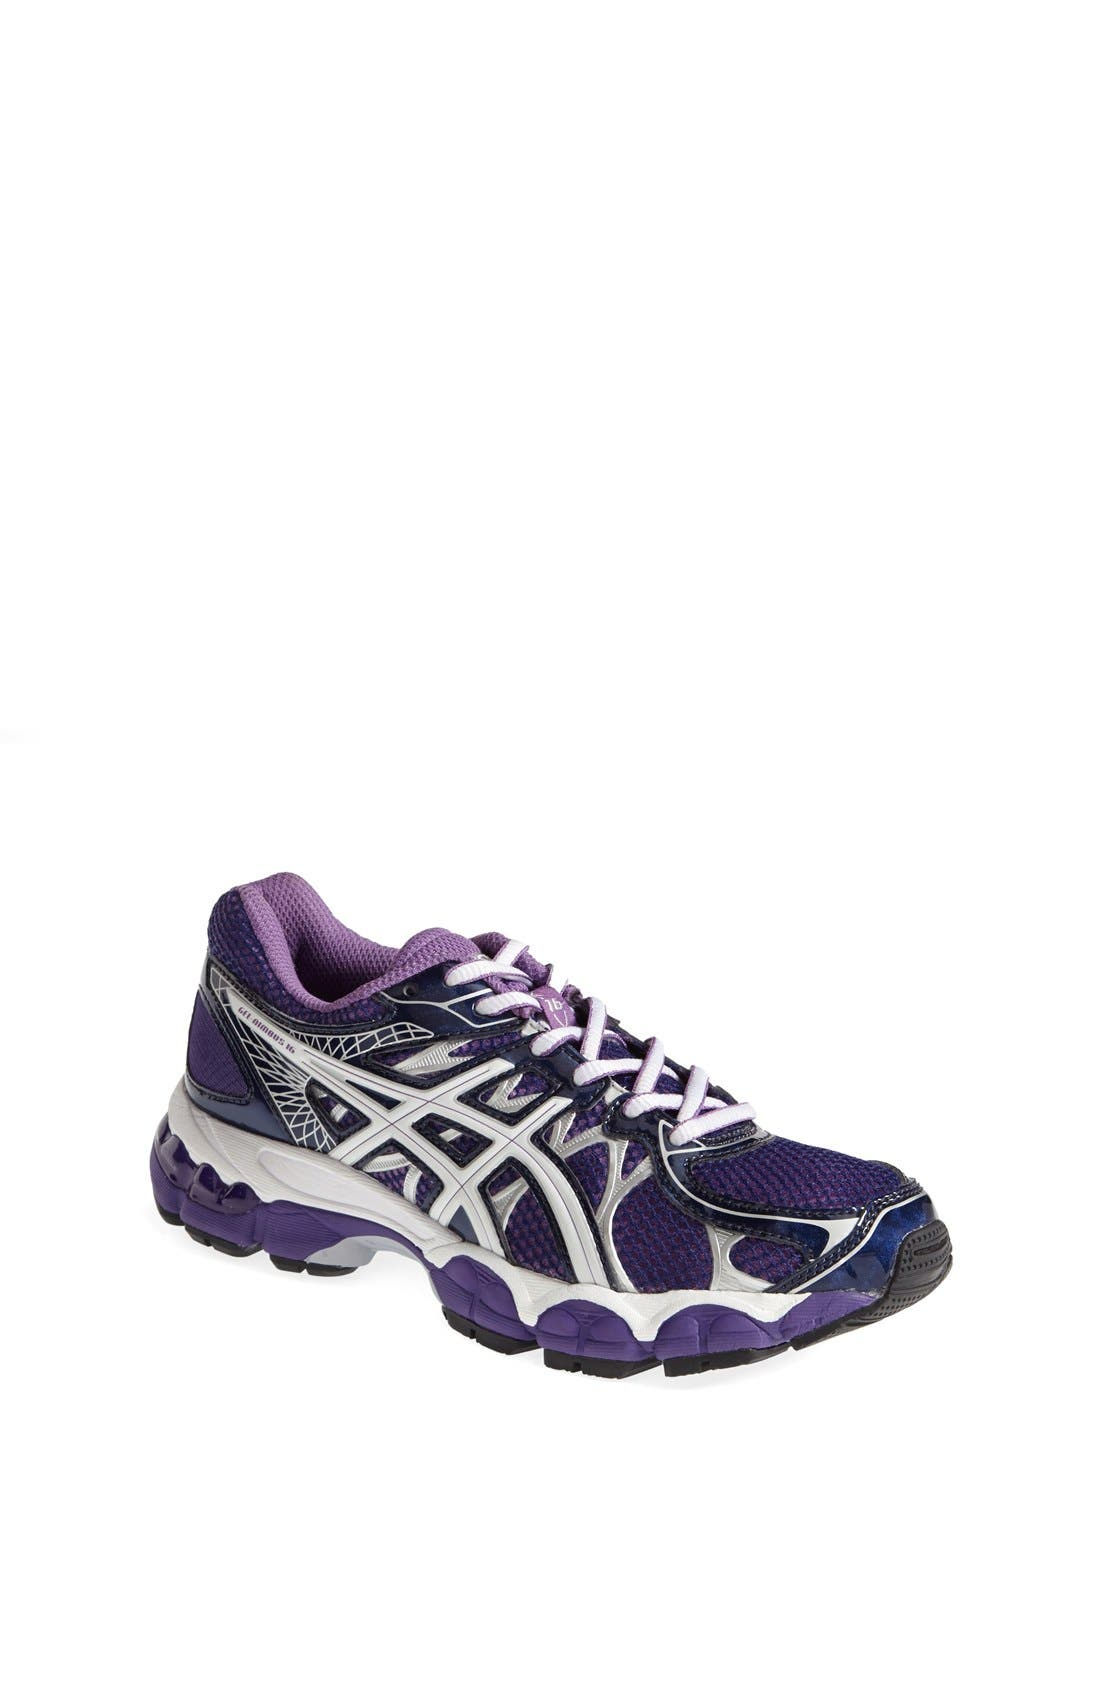 Alternate Image 1 Selected - ASICS® 'GEL-Nimbus 16 GS' Running Shoe (Little Kid & Big Kid)